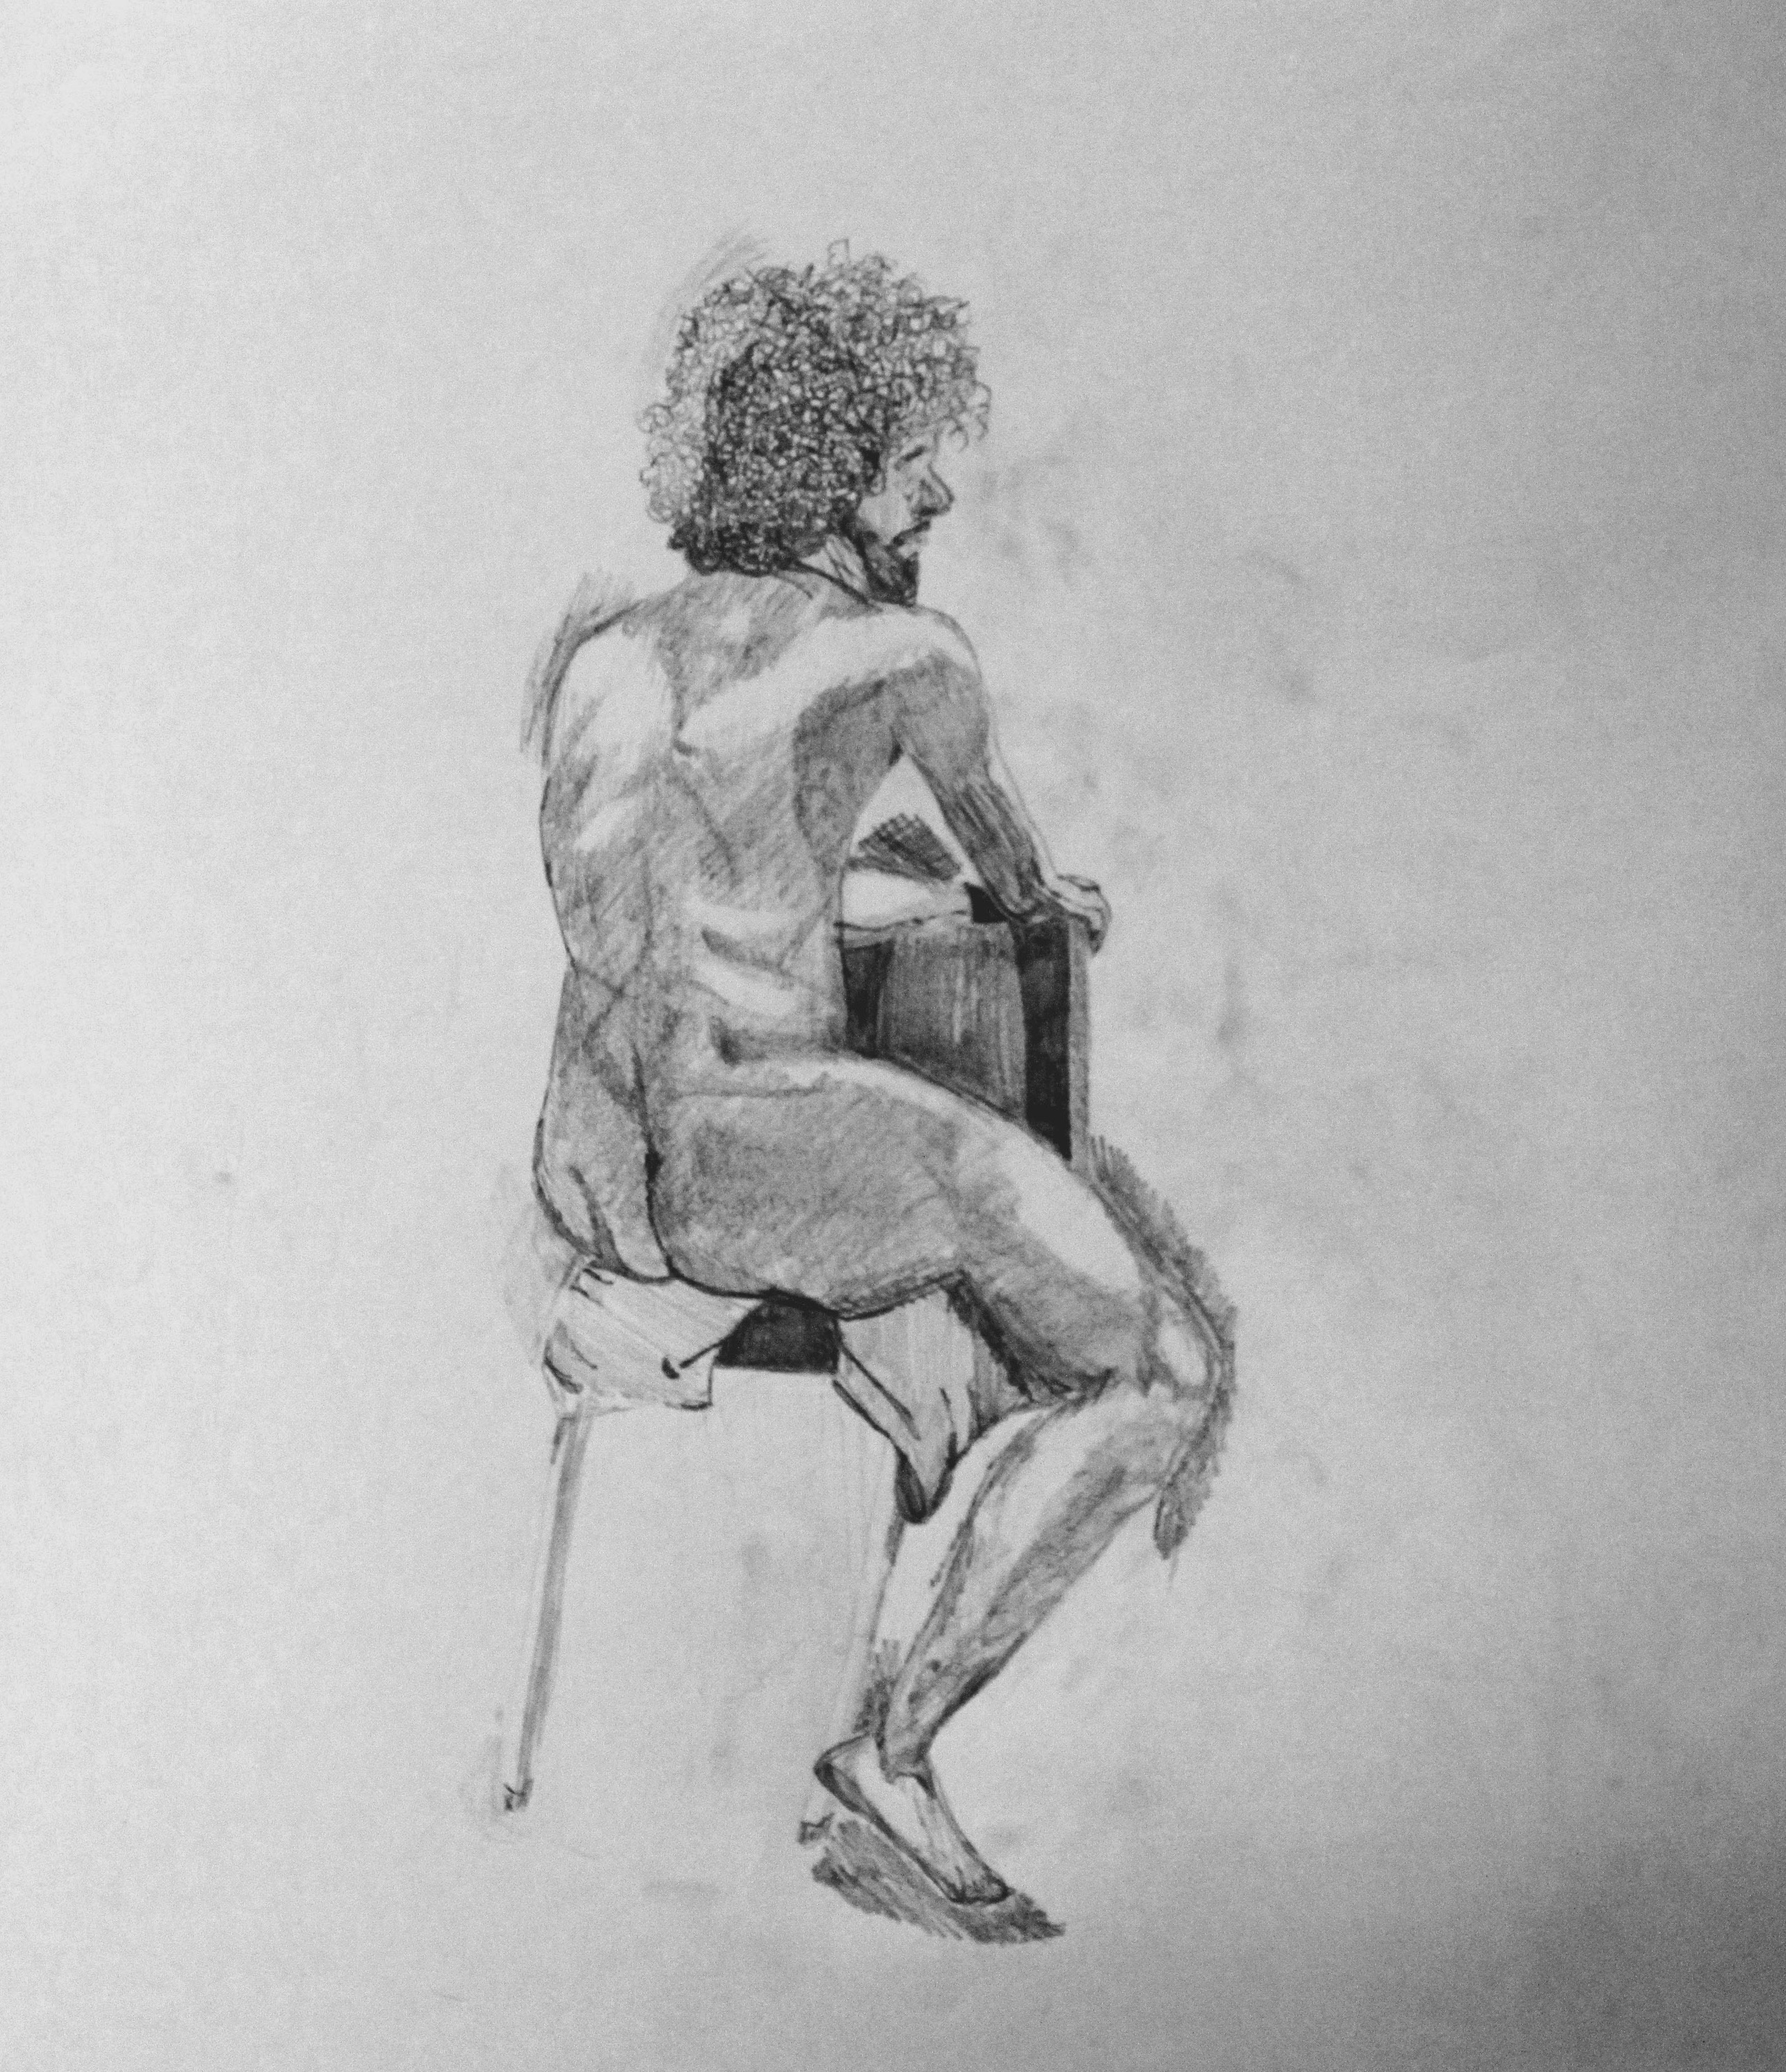 Value Studies with Model in Class-long pose